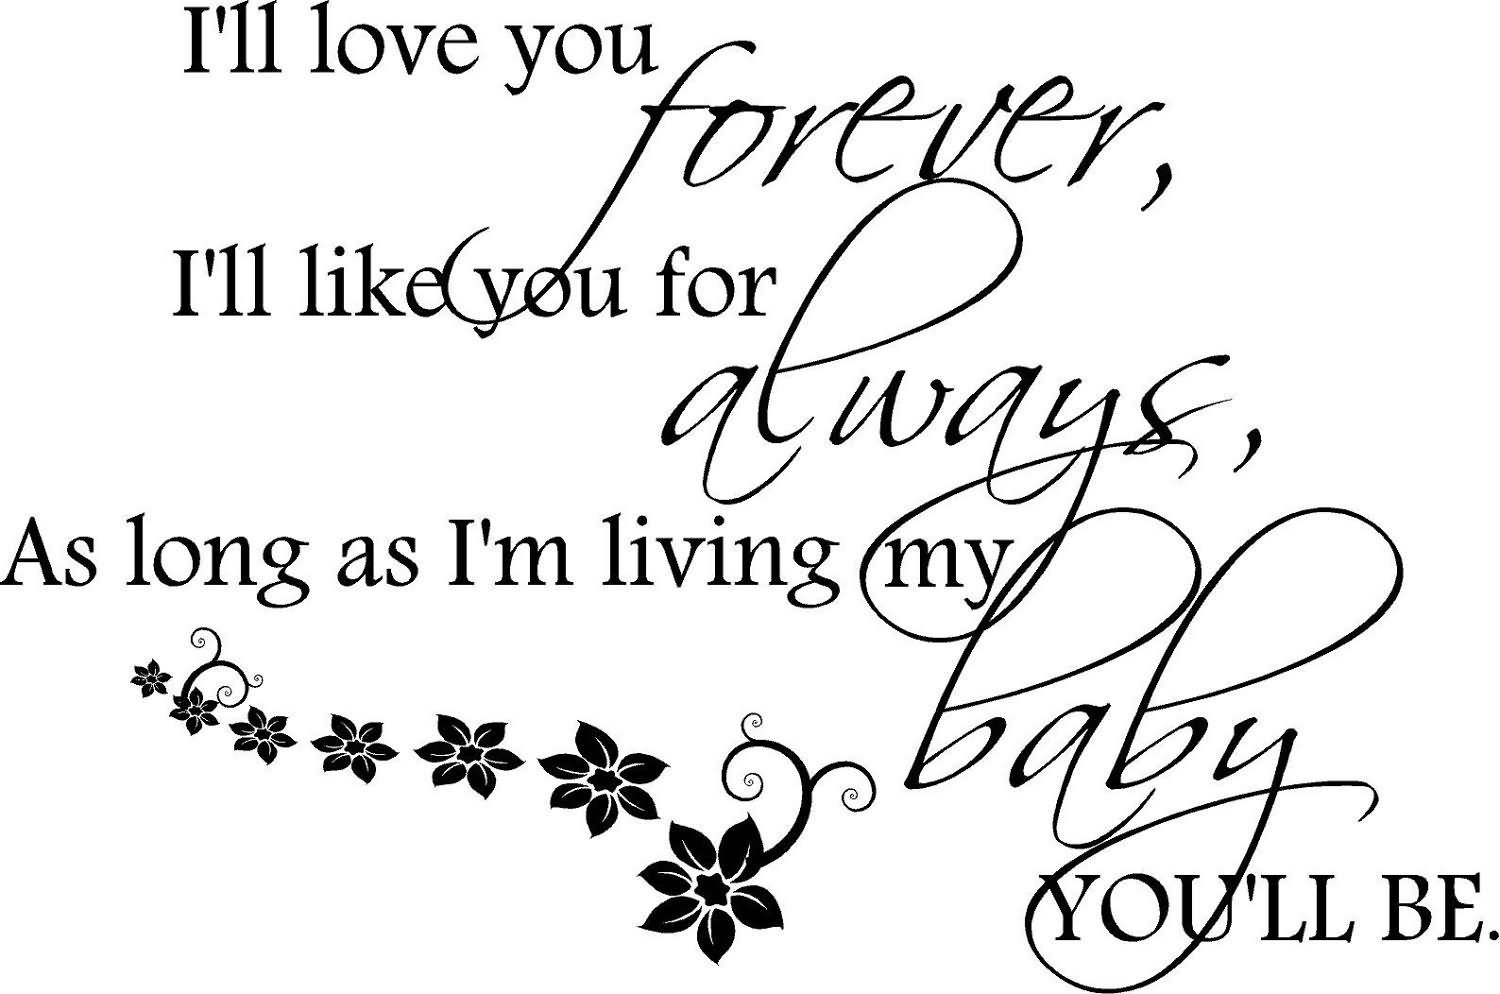 I Love You Forever I Like You For Always Quote I'll Love You Forever  Tattoo Me  Pinterest  Tattoo